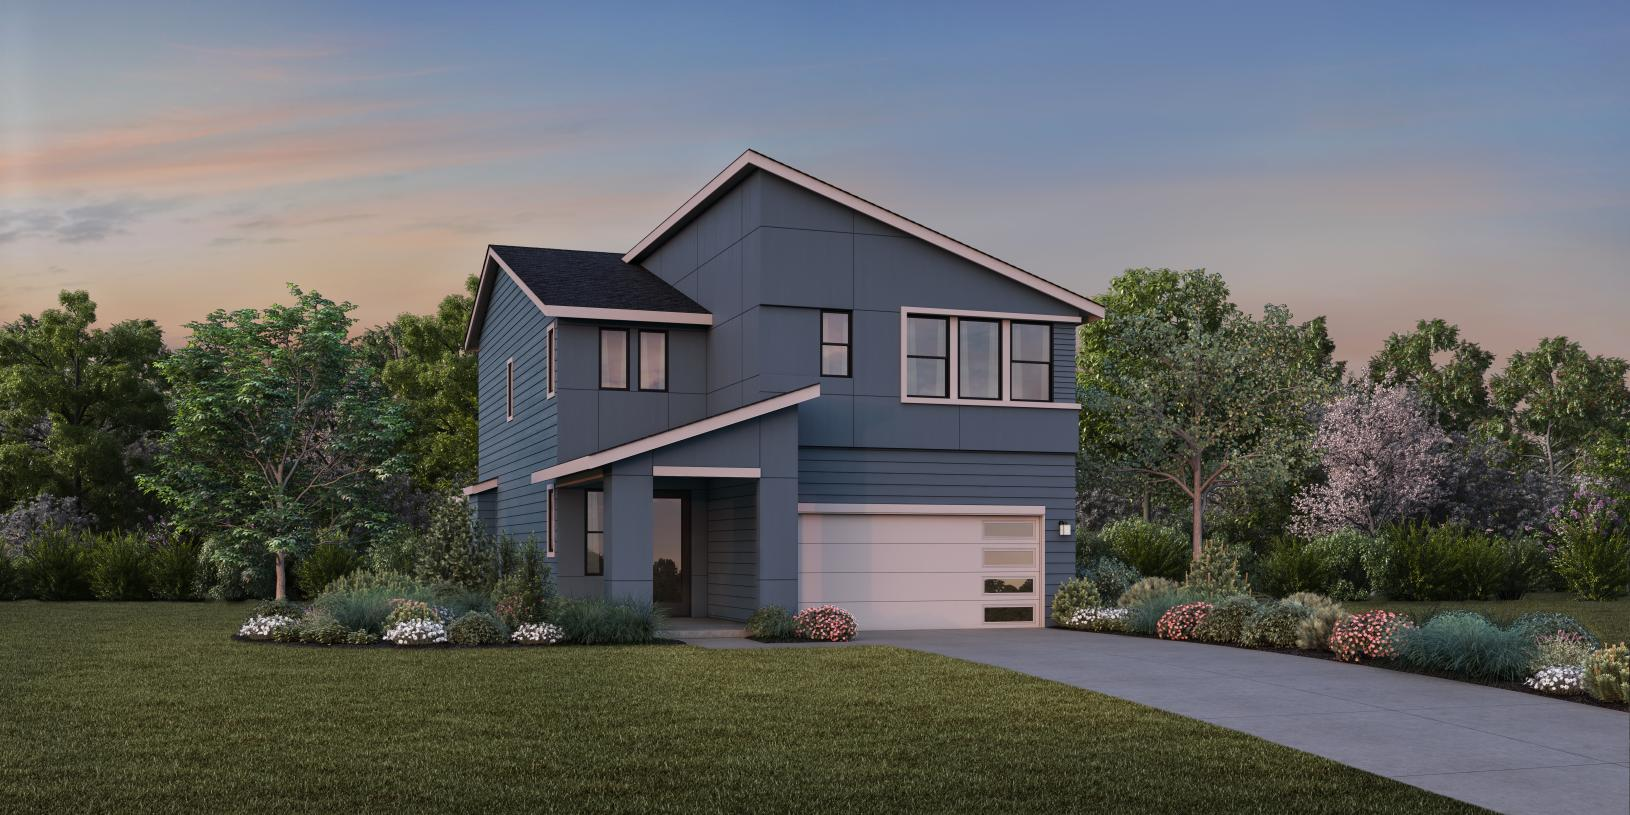 The Glacier with Basement contemporary exterior will blend nicely with a variety of architectural styles